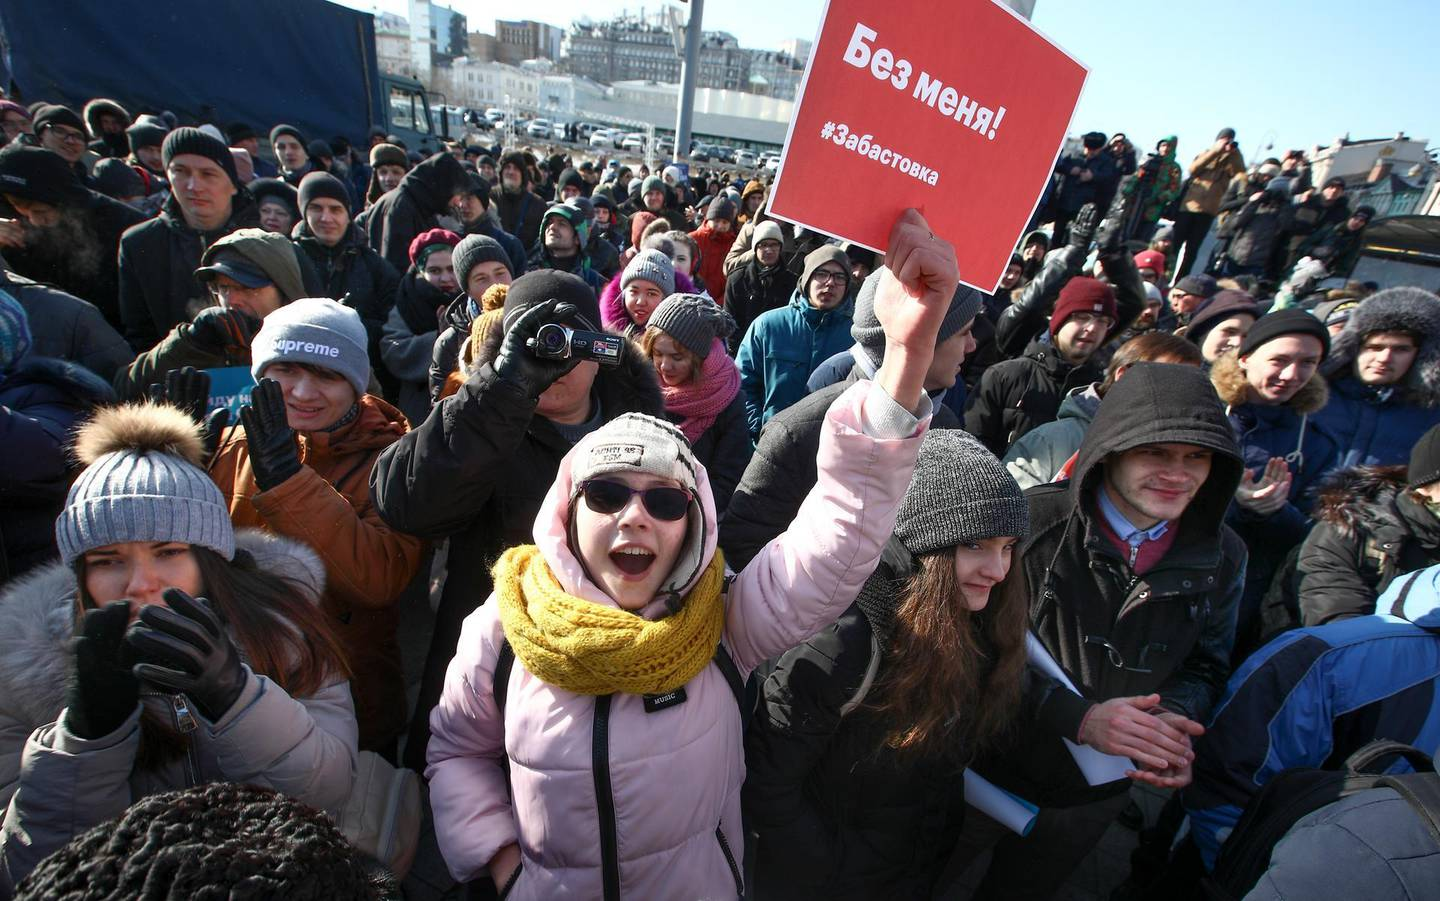 """Demonstrators shout slogans holding a poster which reads """"Elections without me! Strike."""" during a rally in Vladivostok, Russia, Sunday, Jan. 28, 2018. Opposition politician Alexey Navalny calls for nationwide protests following Russia's Central Election Commission's decision to ban his presidential candidacy. (AP Photo/Aleksander Khitrov)"""